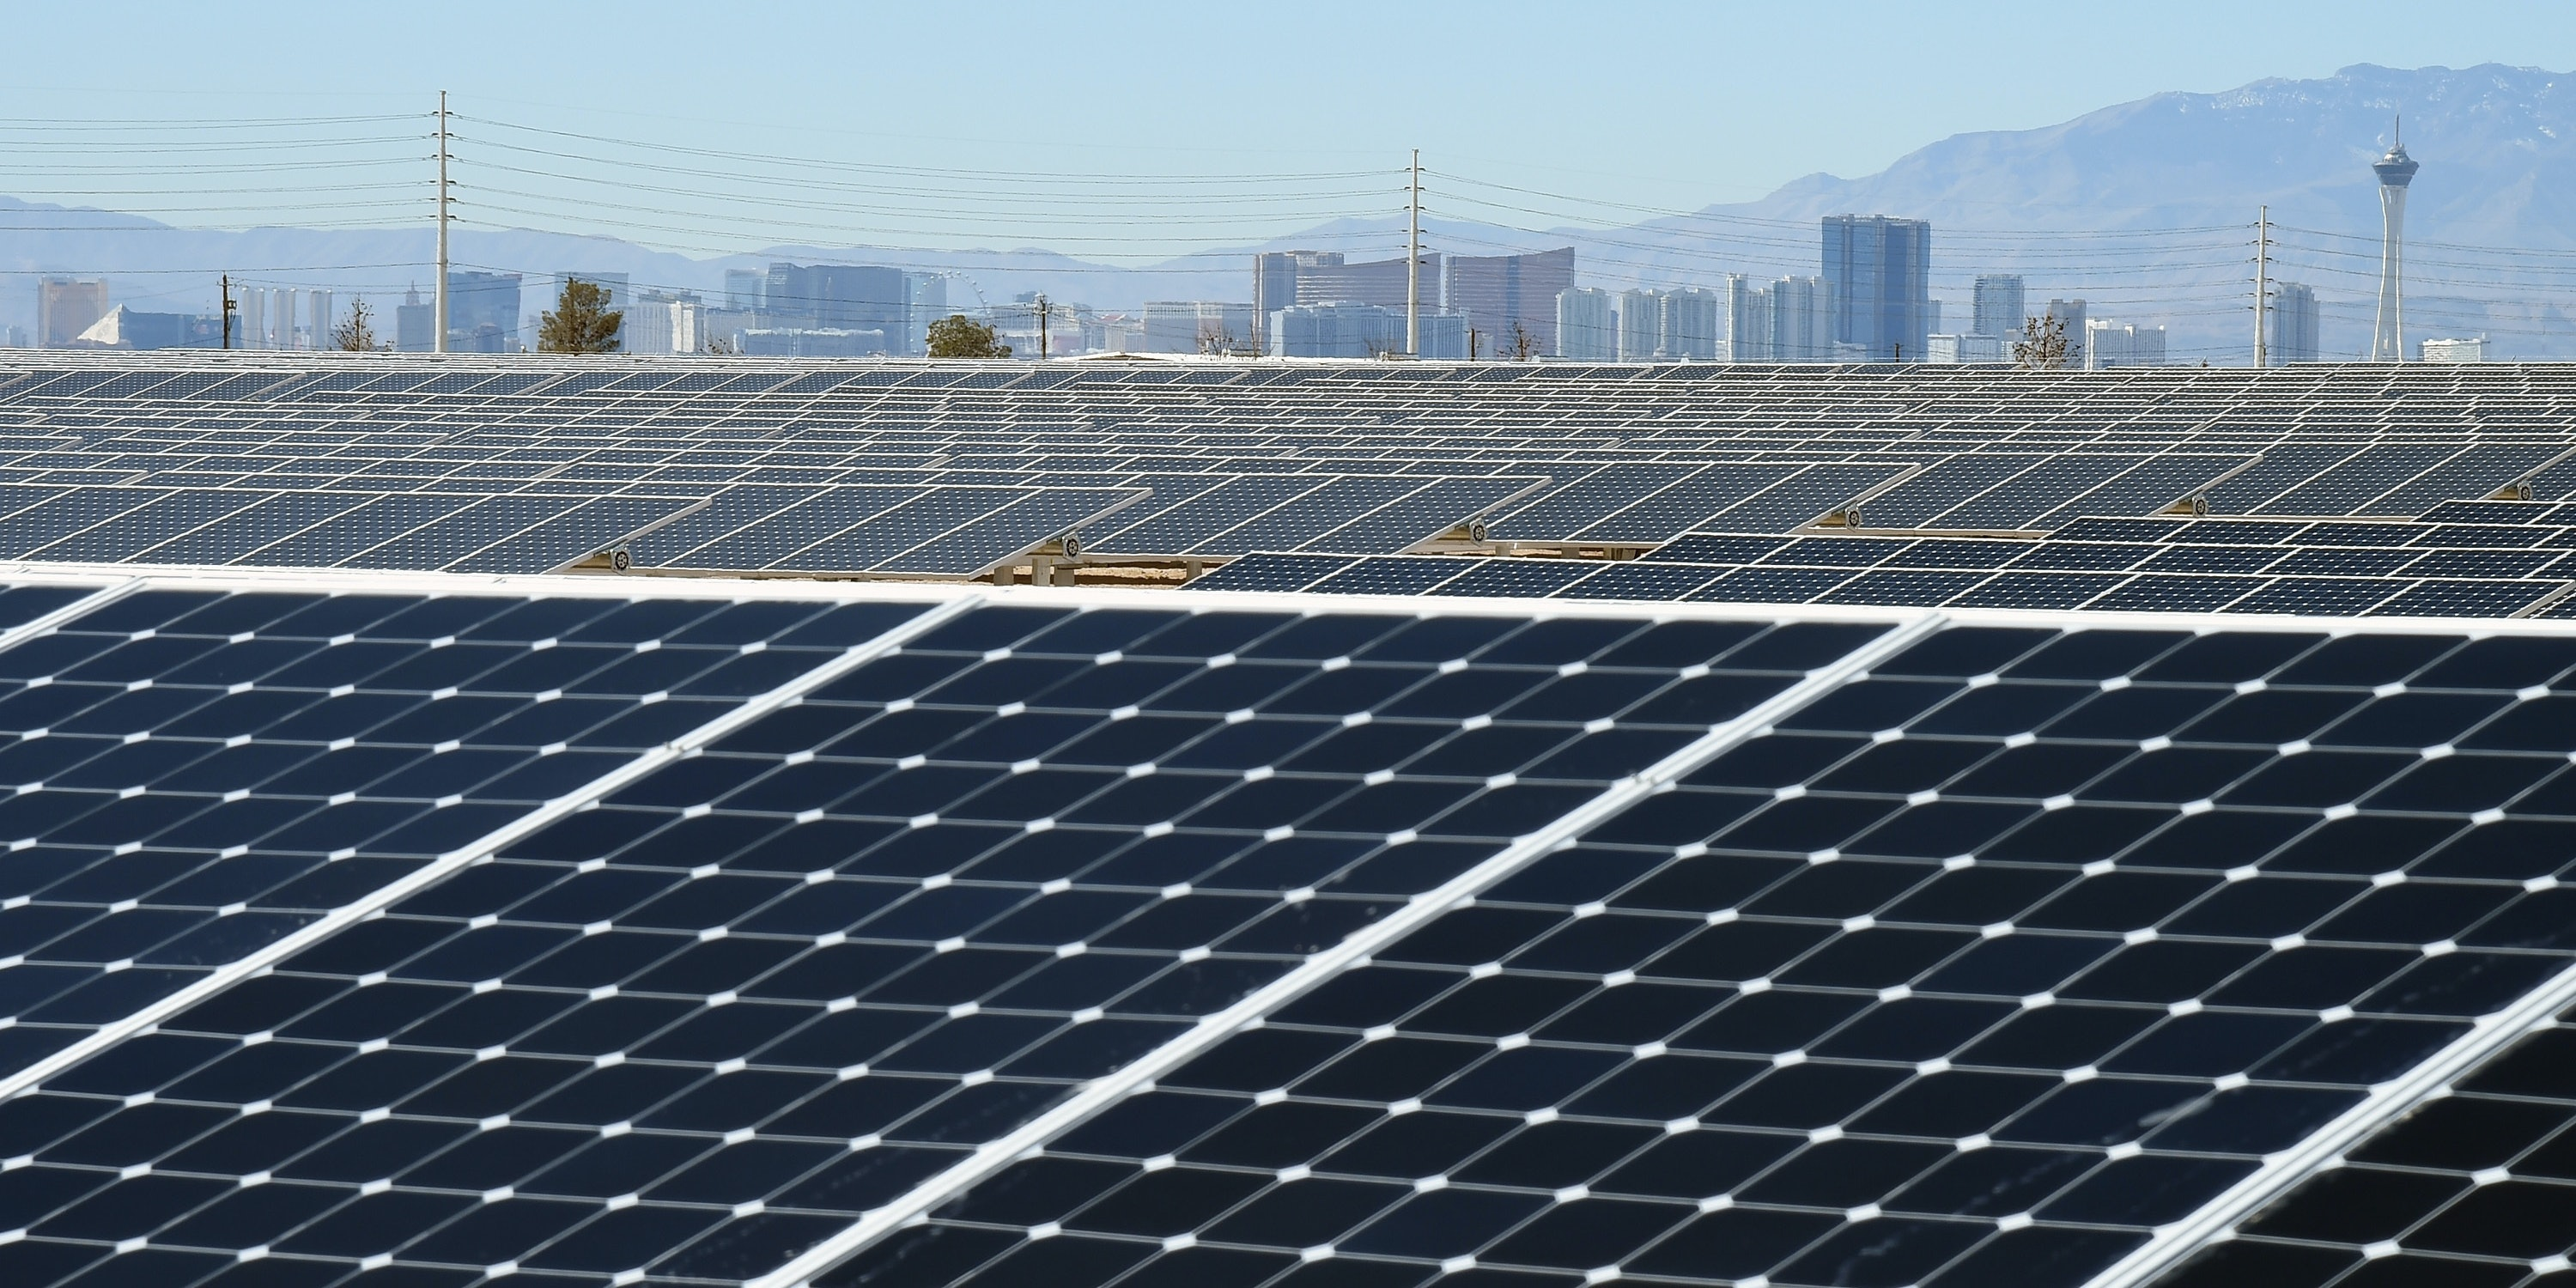 LAS VEGAS, NV - FEBRUARY 16:  The Las Vegas Strip is shown behind solar panels during a dedication ceremony to commemorate the completion of the 102-acre, 15-megawatt Solar Array II Generating Station at Nellis Air Force Base on February 16, 2016 in Las Vegas, Nevada. When coupled with the 13.2-megawatt Nellis Solar Star project completed in 2007, Nellis has the largest solar photovoltaic system in the Department of Defense. During daylight hours the two solar fields combined provide almost all of the base's energy needs or about 42 percent of its overall electricity requirements. Power from the array that is not used will go to the NV Energy grid and back into the local community.  (Photo by Ethan Miller/Getty Images)